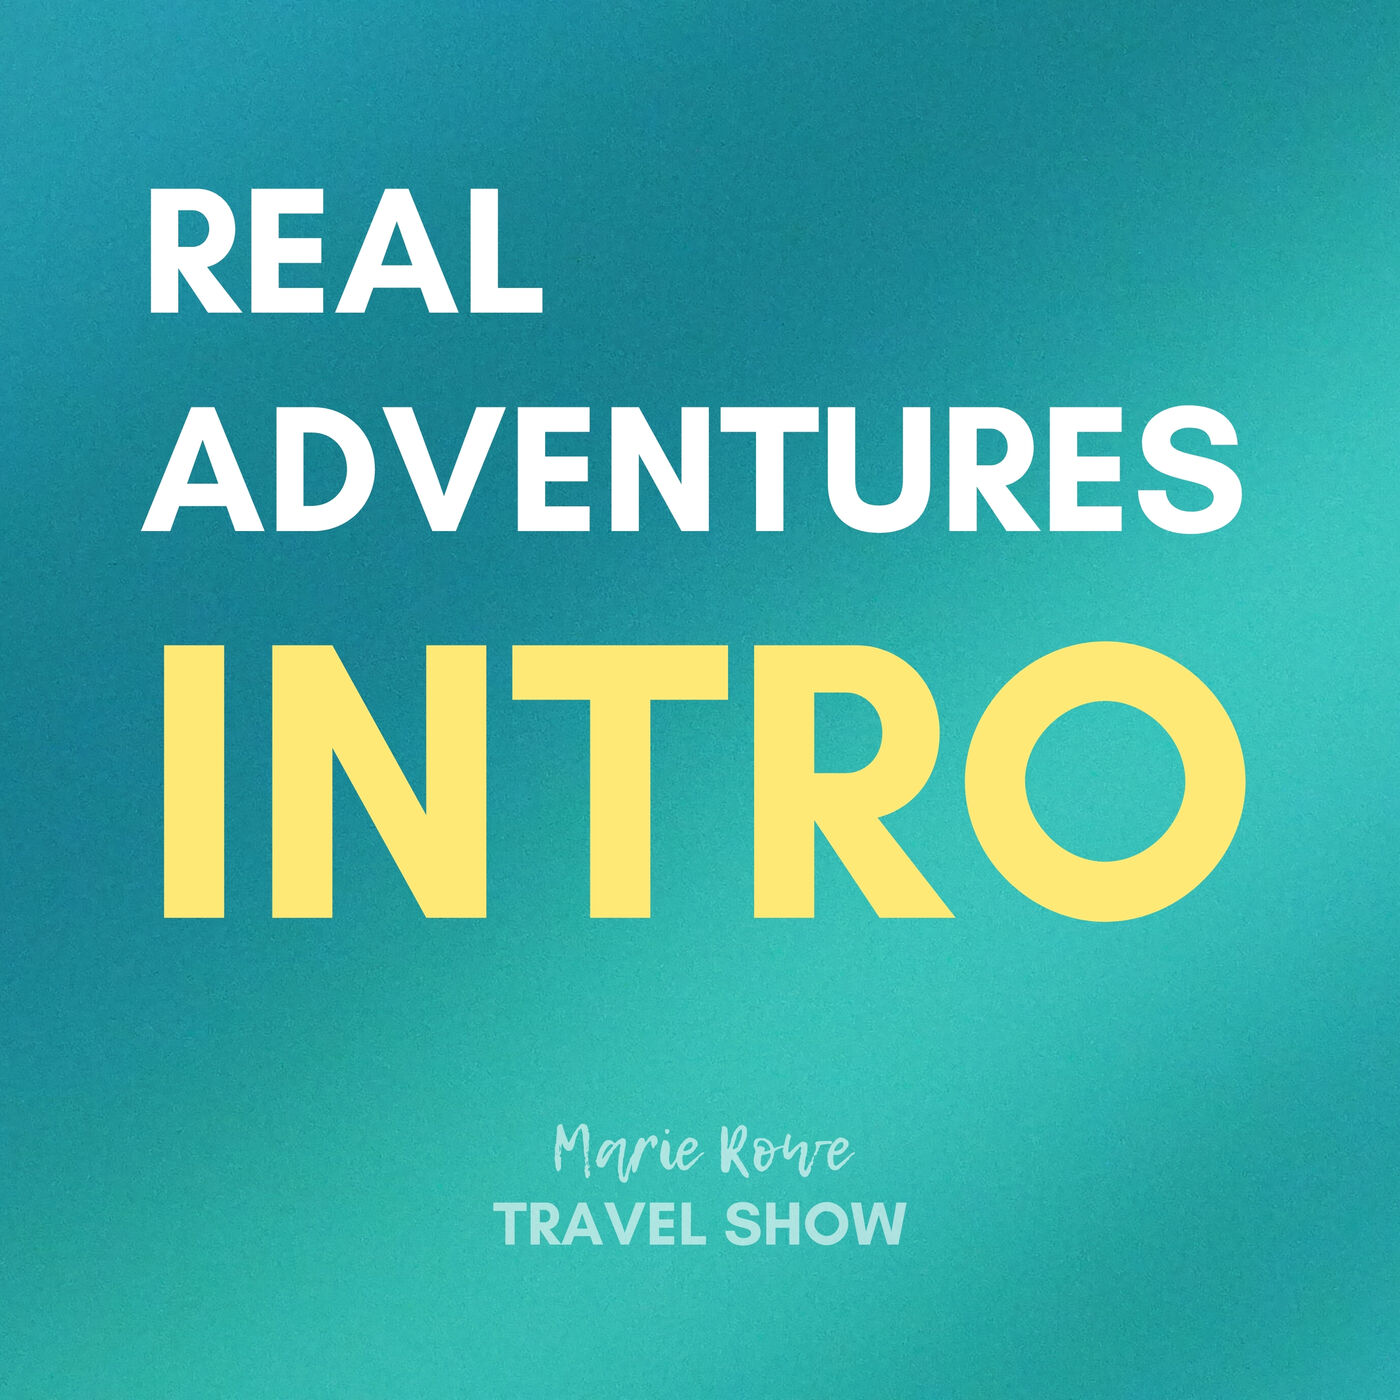 REAL ADVENTURES INTRO: WHAT LIES BEYOND THE BEACH?